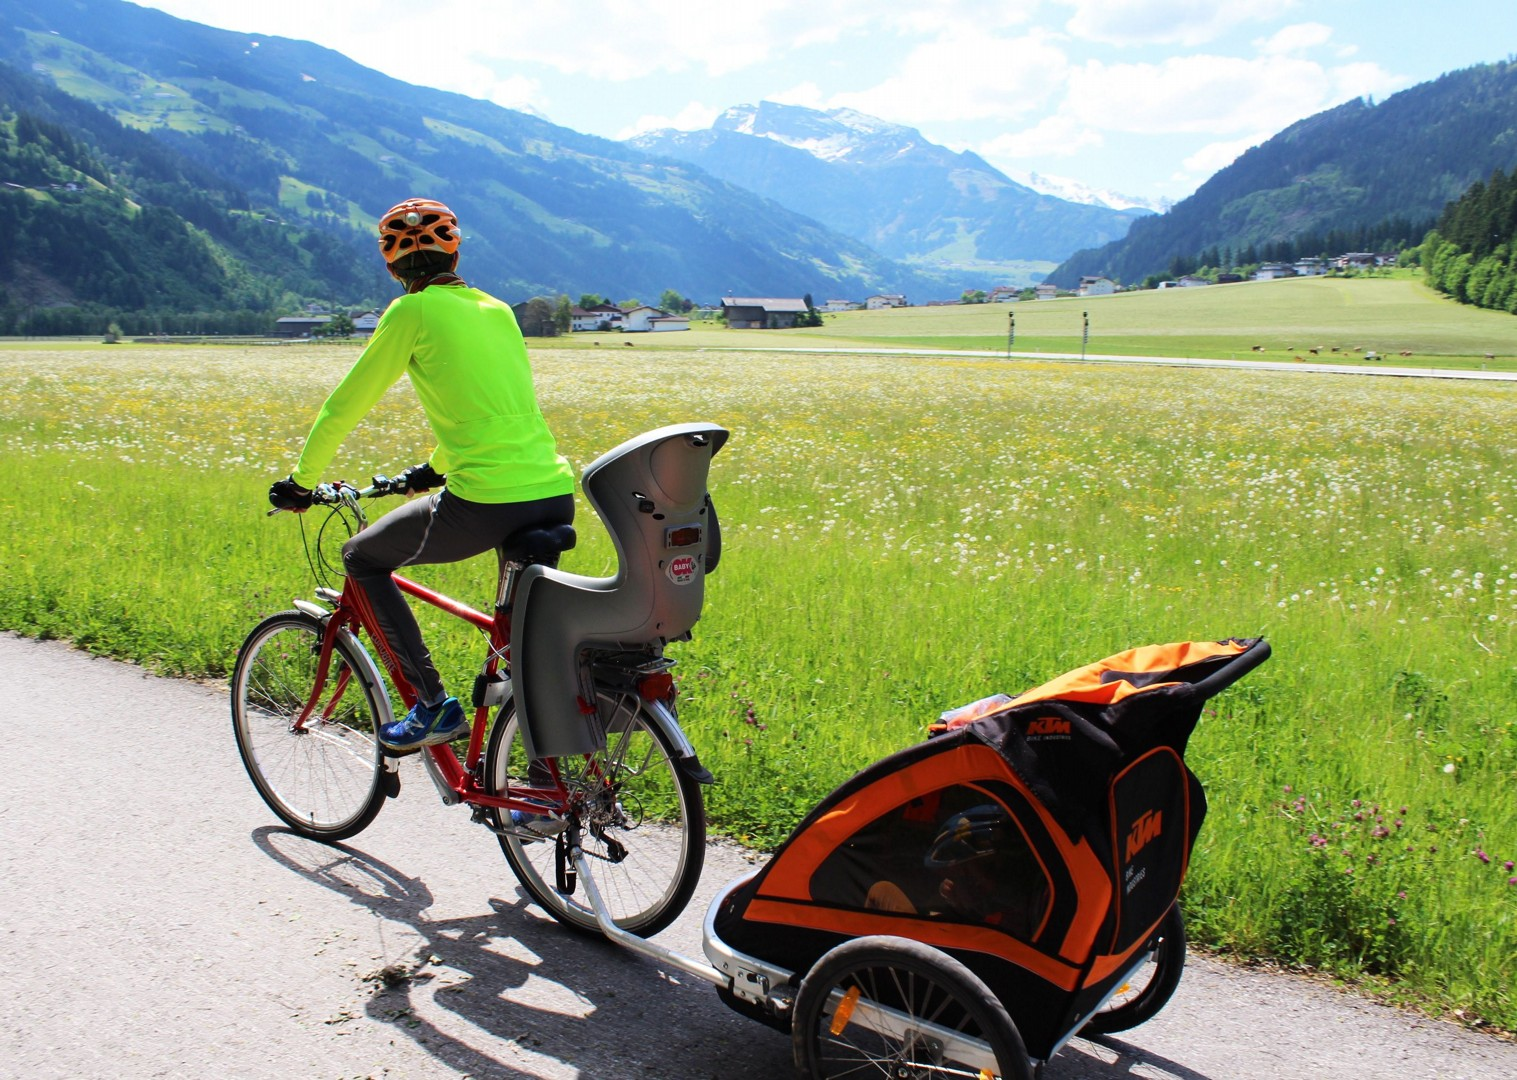 family-self-guided-cycling-holiday-austria.jpg - Austria - Tyrolean Valleys - Family Cycling